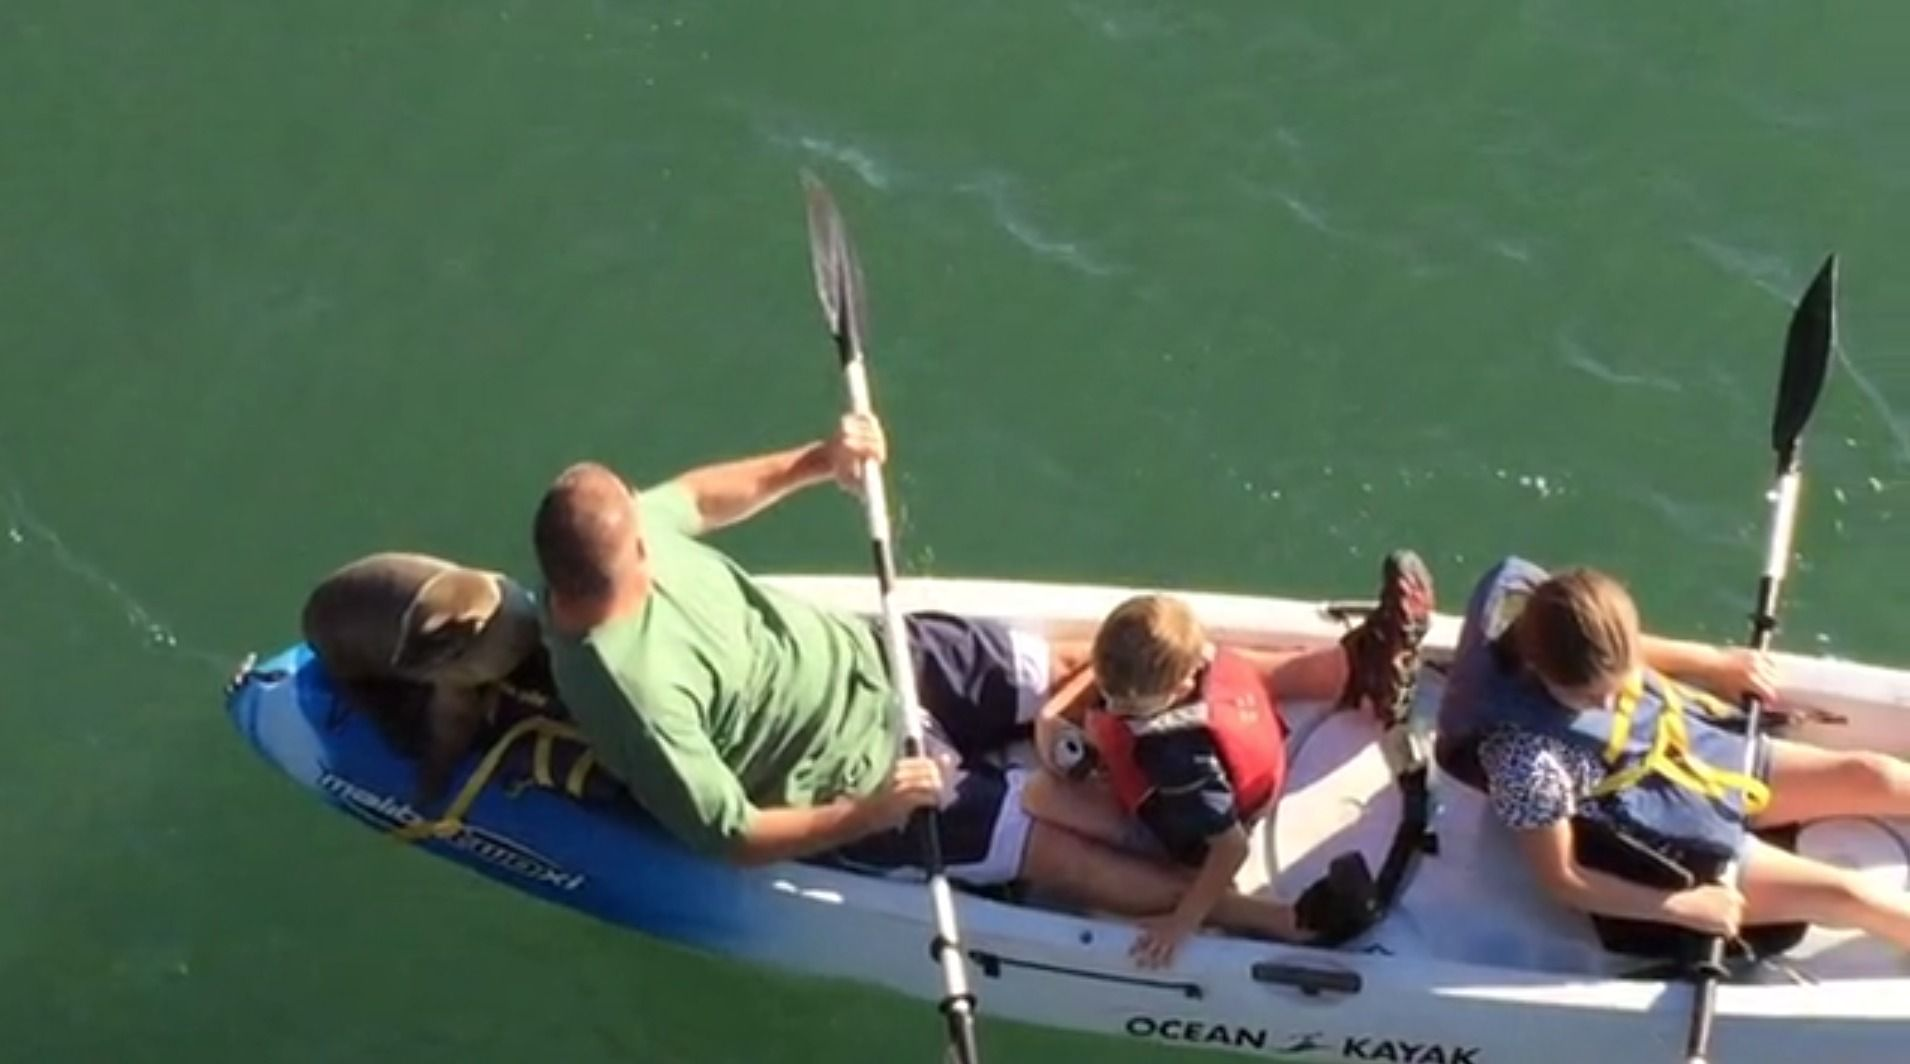 They felt some extra weight on the kayak then they looked